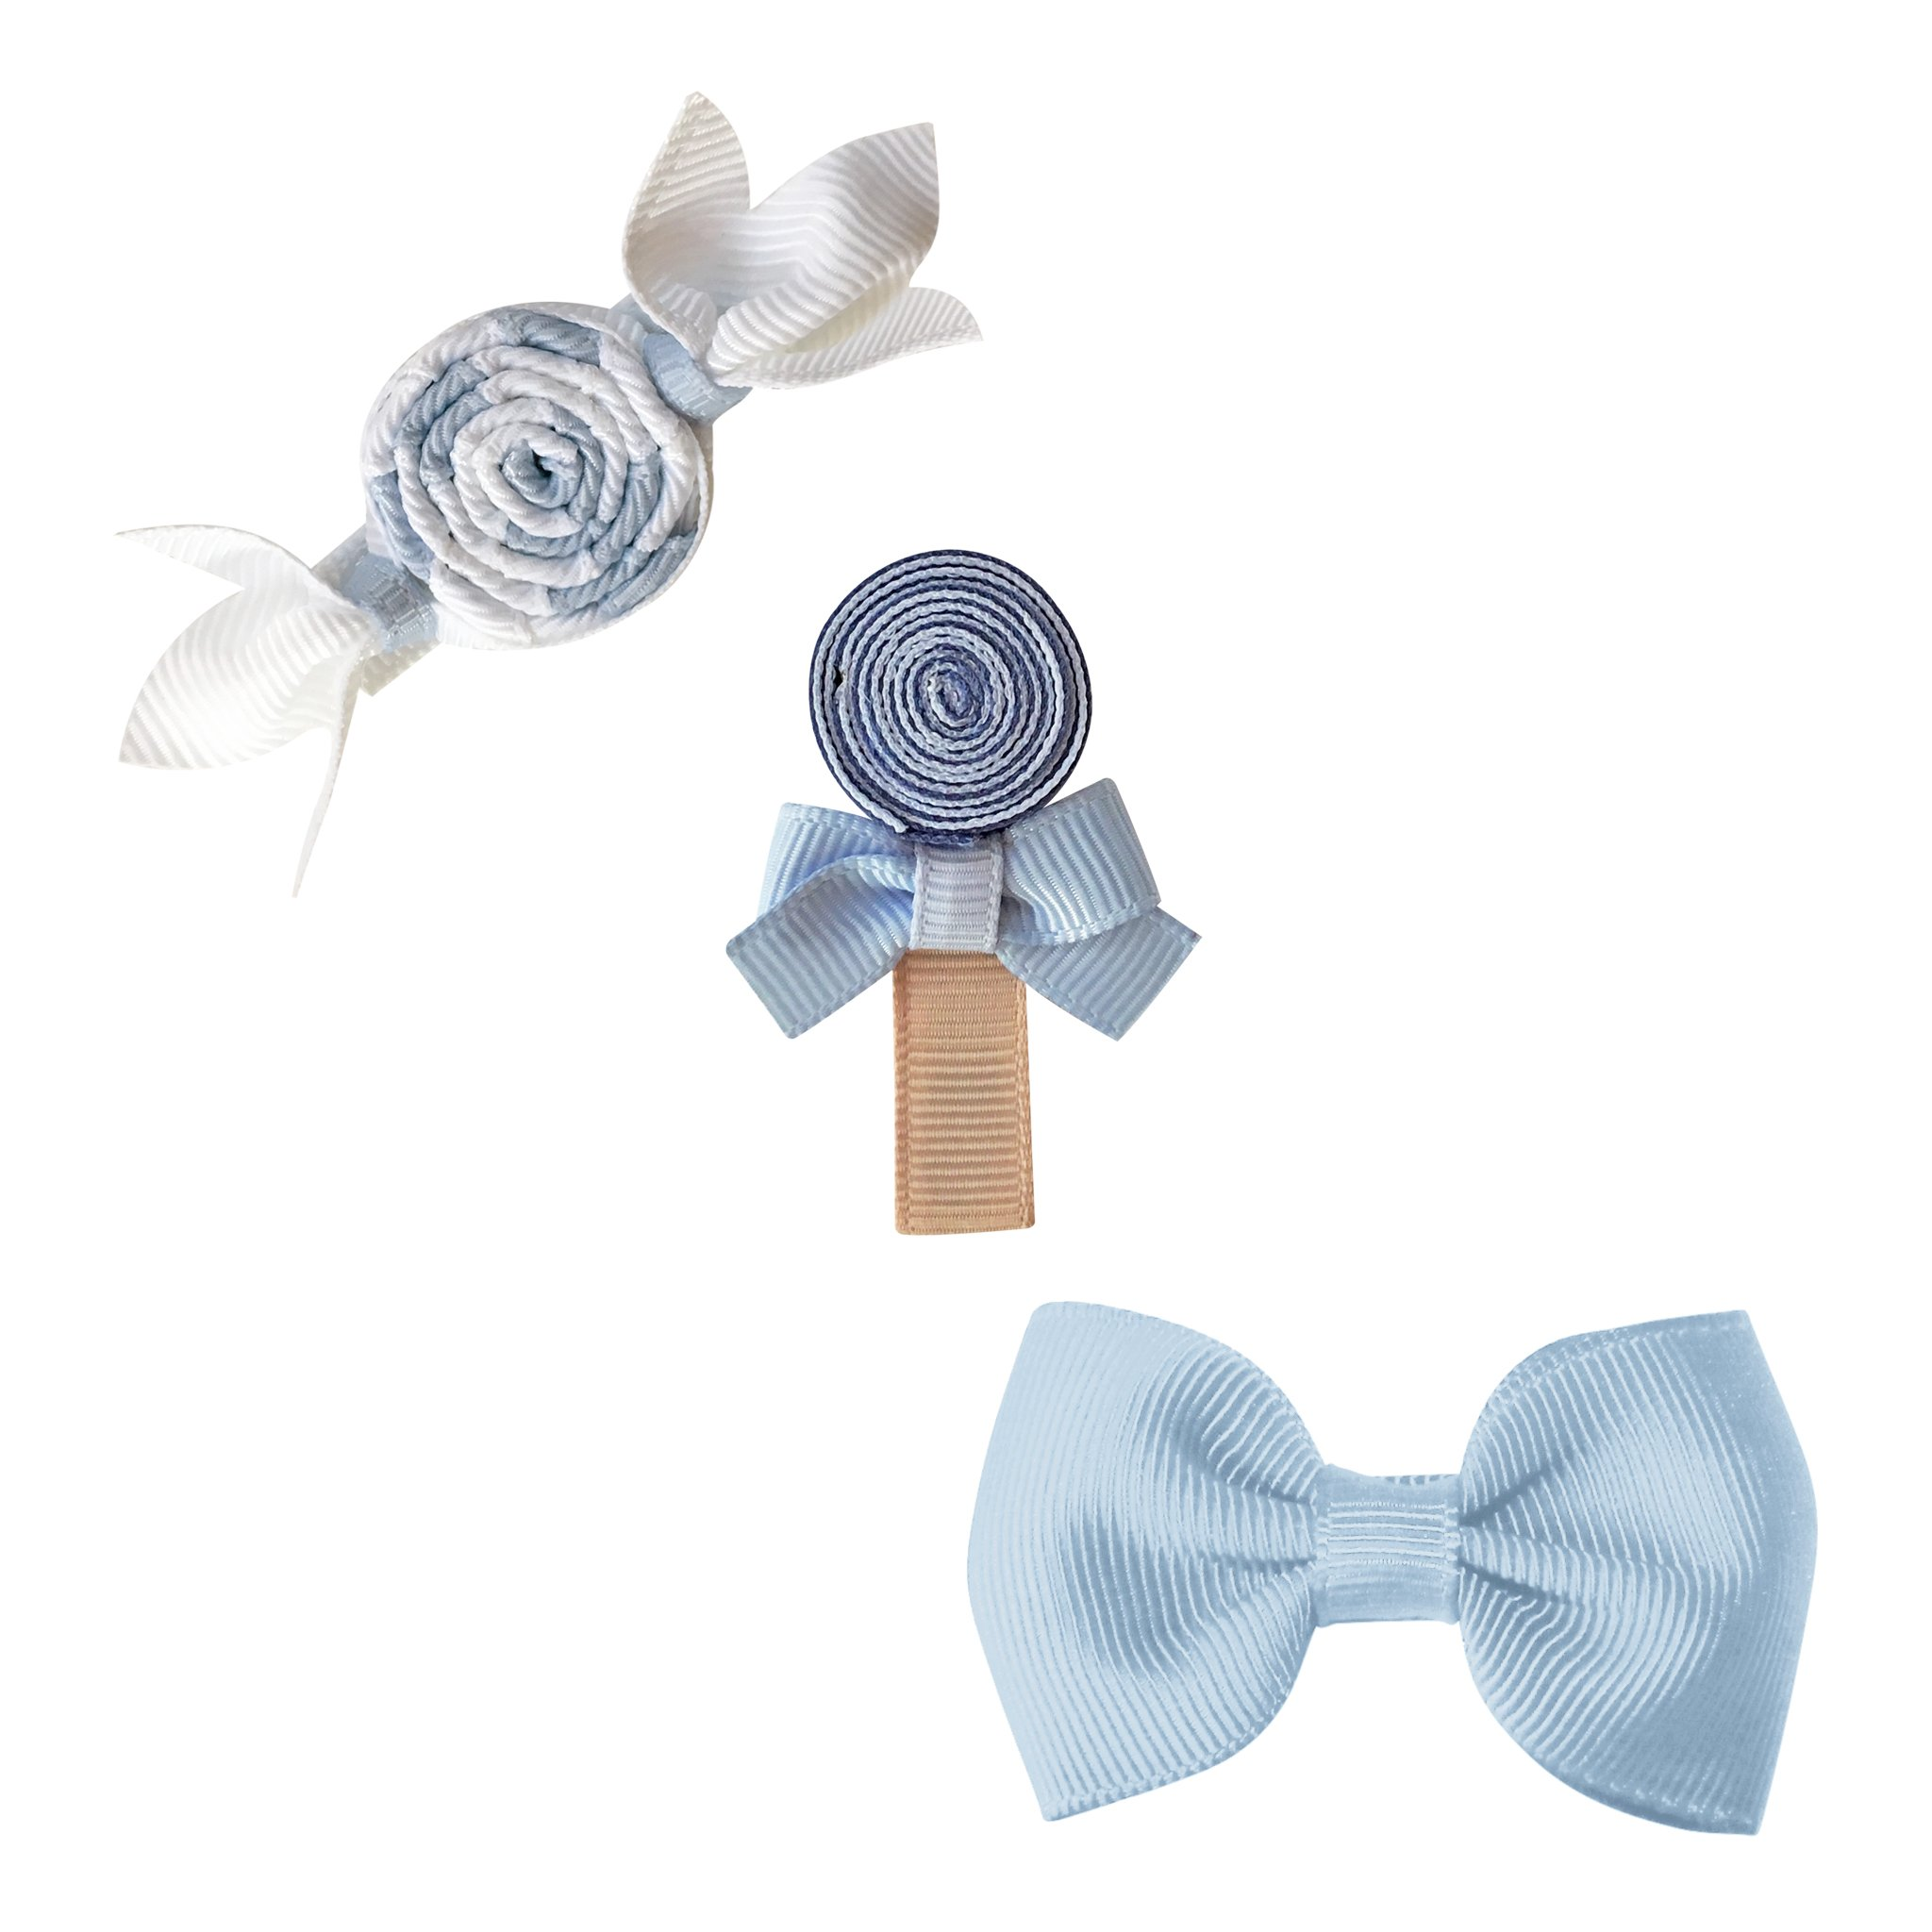 Image of Milledeux® Candy Collection gift set - Bonbon, Lollipop and Bow - bluebell